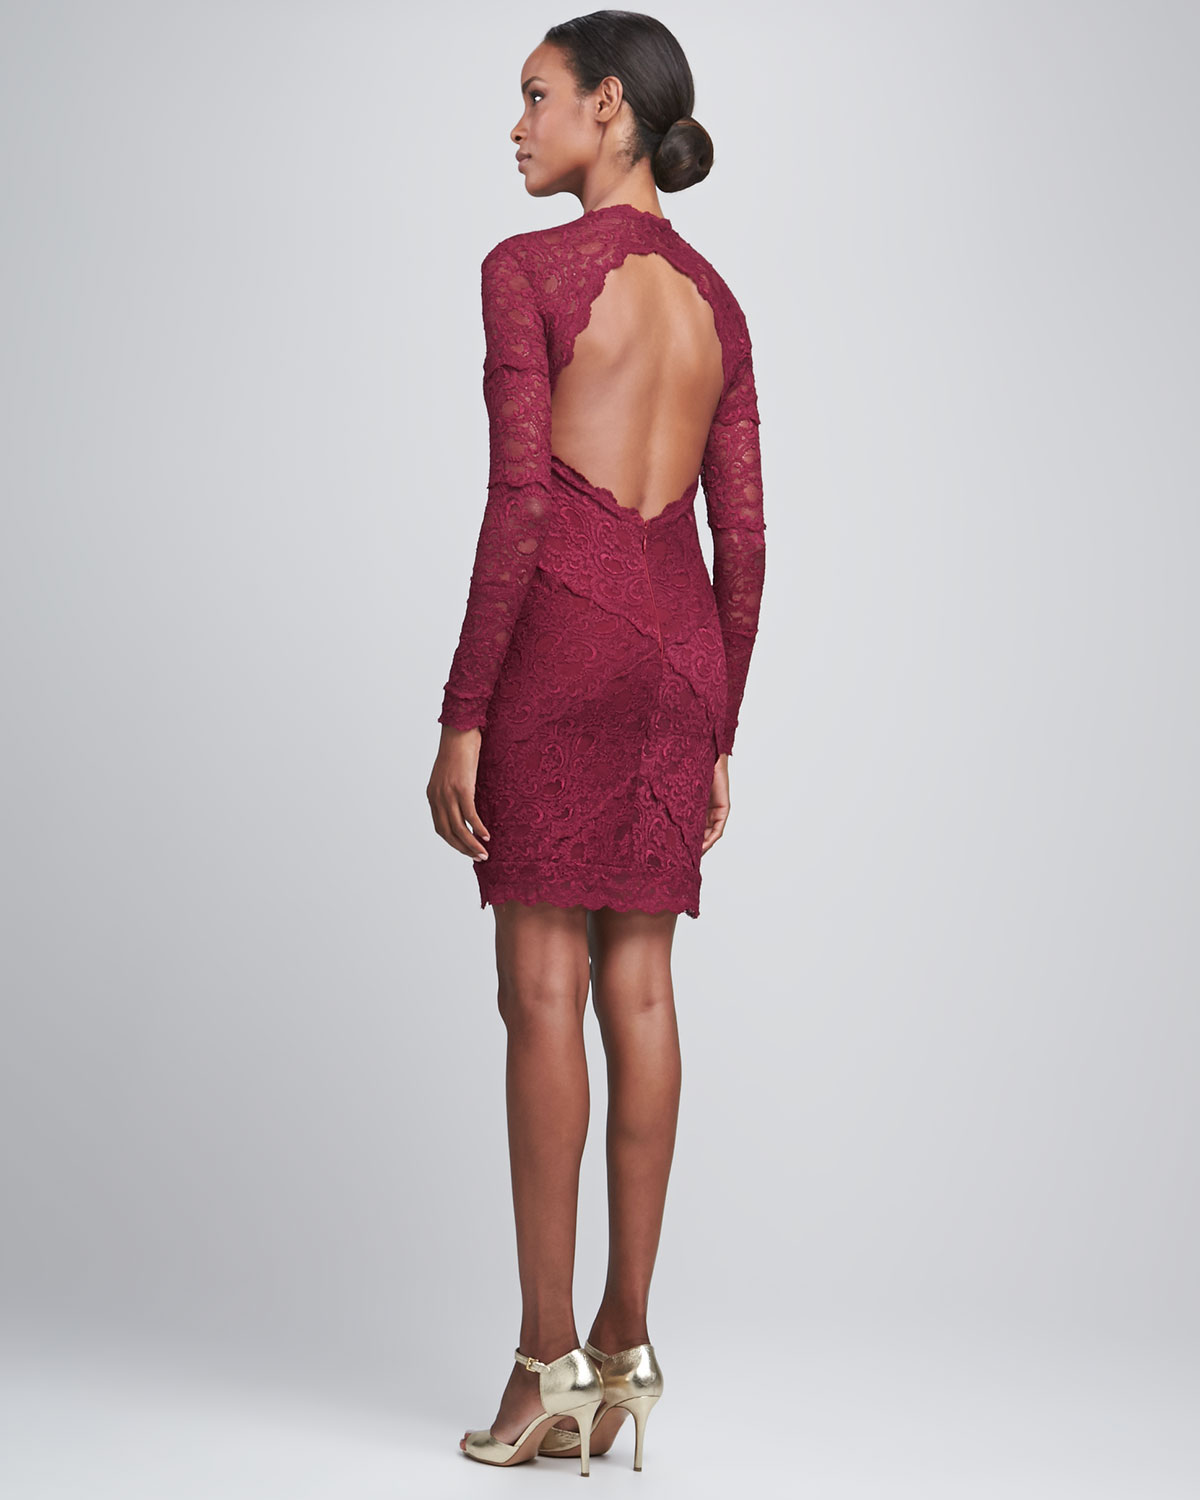 Nicole miller Longsleeve Openback Lace Cocktail Dress in Red  Lyst